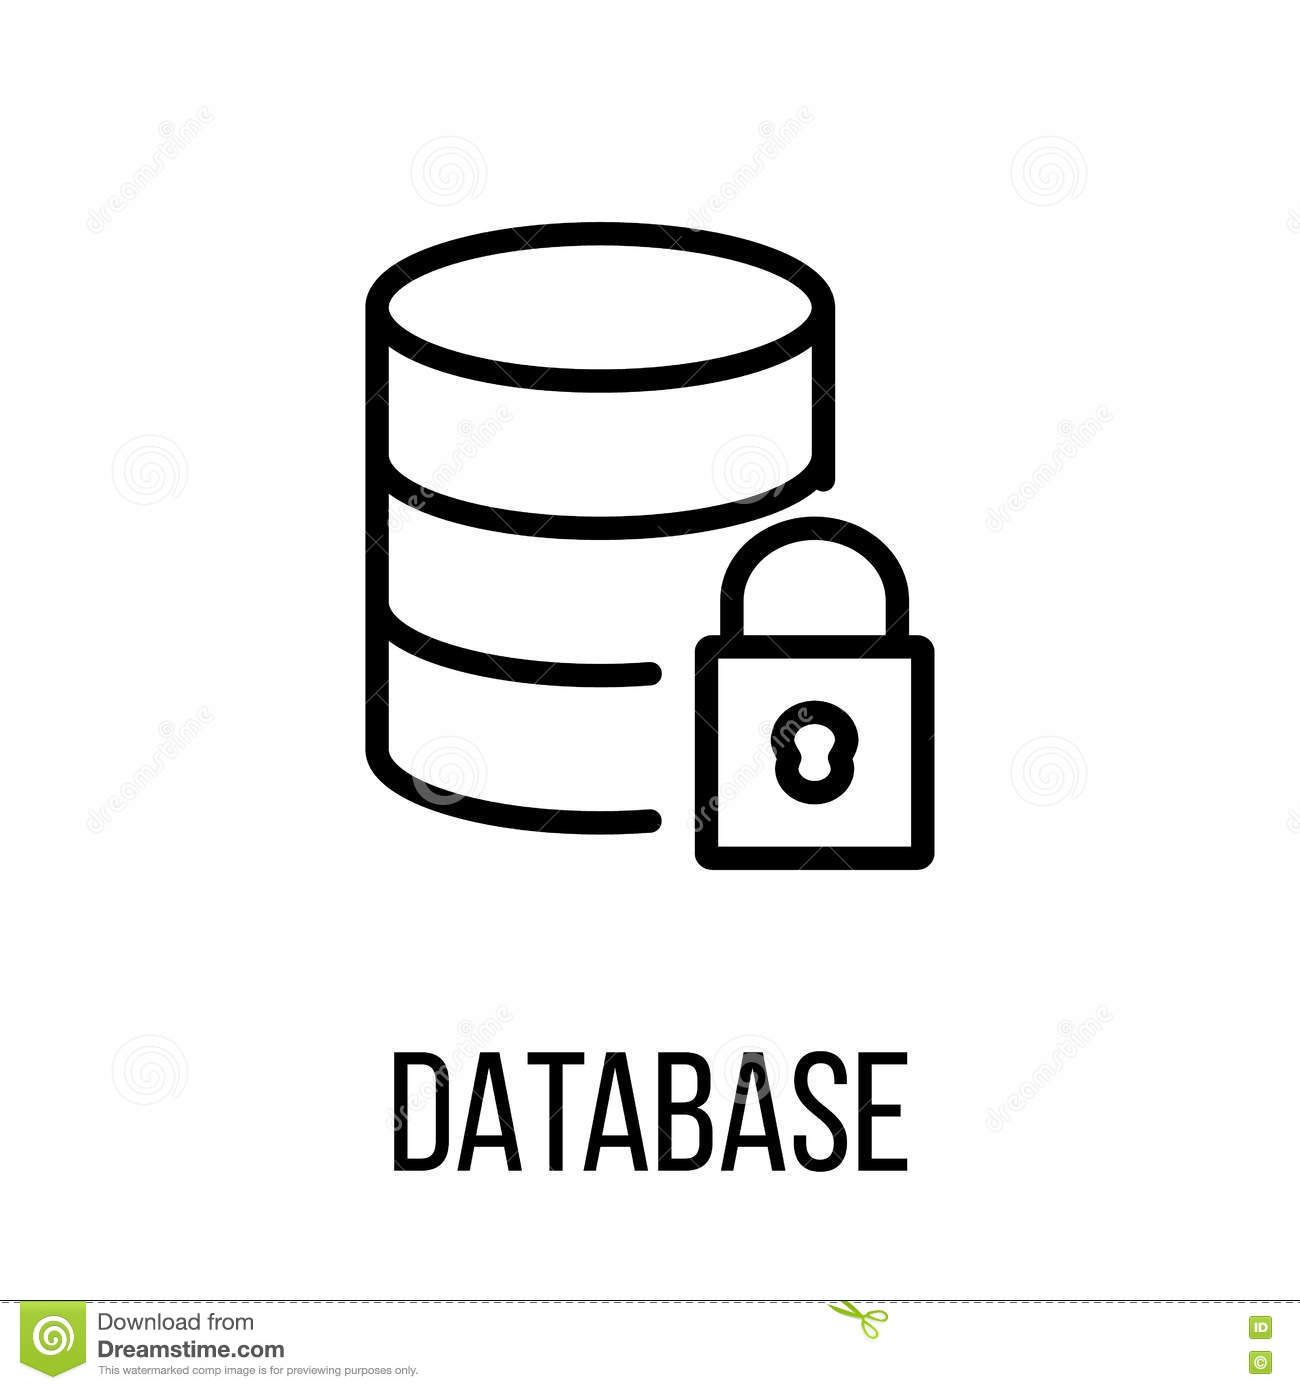 Database Icon Logo Modern Line Style 517584388 in addition 476044623081660074 together with Ltc2485  plete Type K Thermocouple Measurement System I2c With Cold Junction  pensation furthermore Template Mall Floor Plan likewise Search. on data center network design